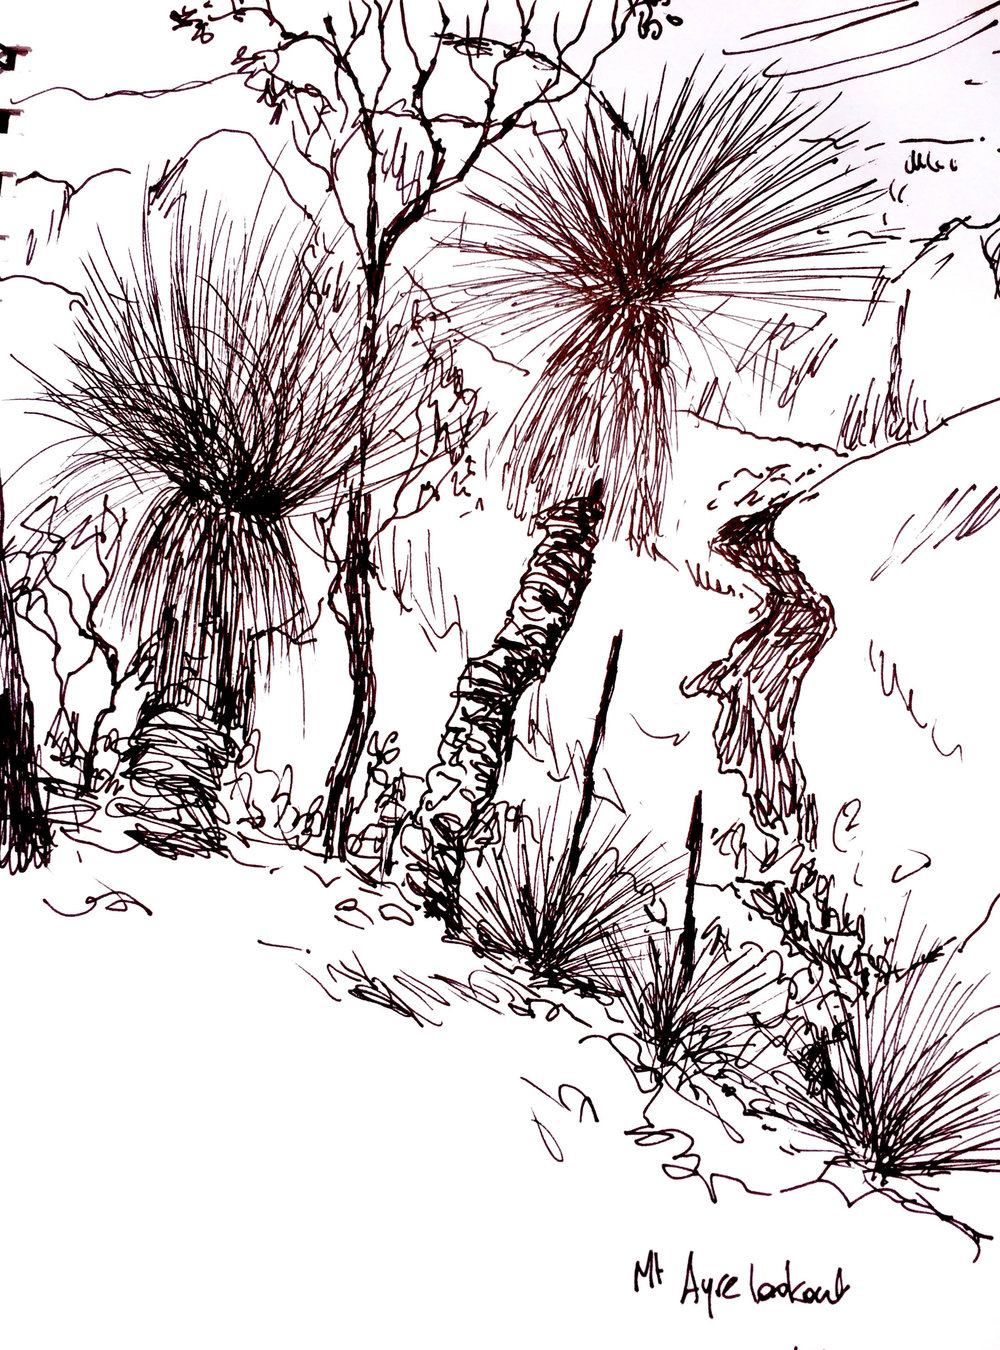 pen and ink drawing from Mt Ayre